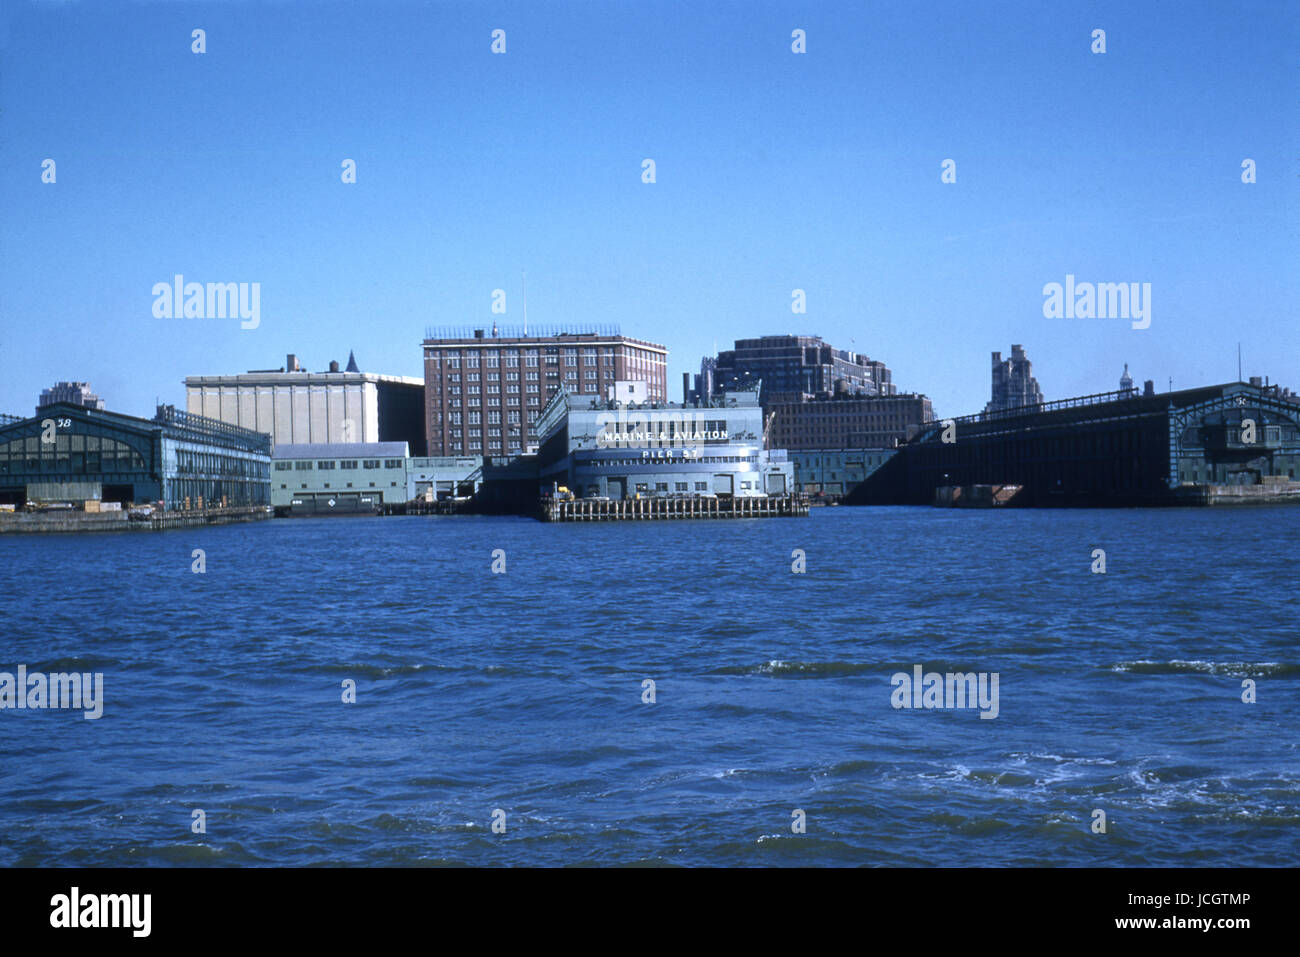 Antique October 1958 photograph, view of Pier 56, 57, and 58 from the Hudson River in New York City. SOURCE: ORIGINAL - Stock Image